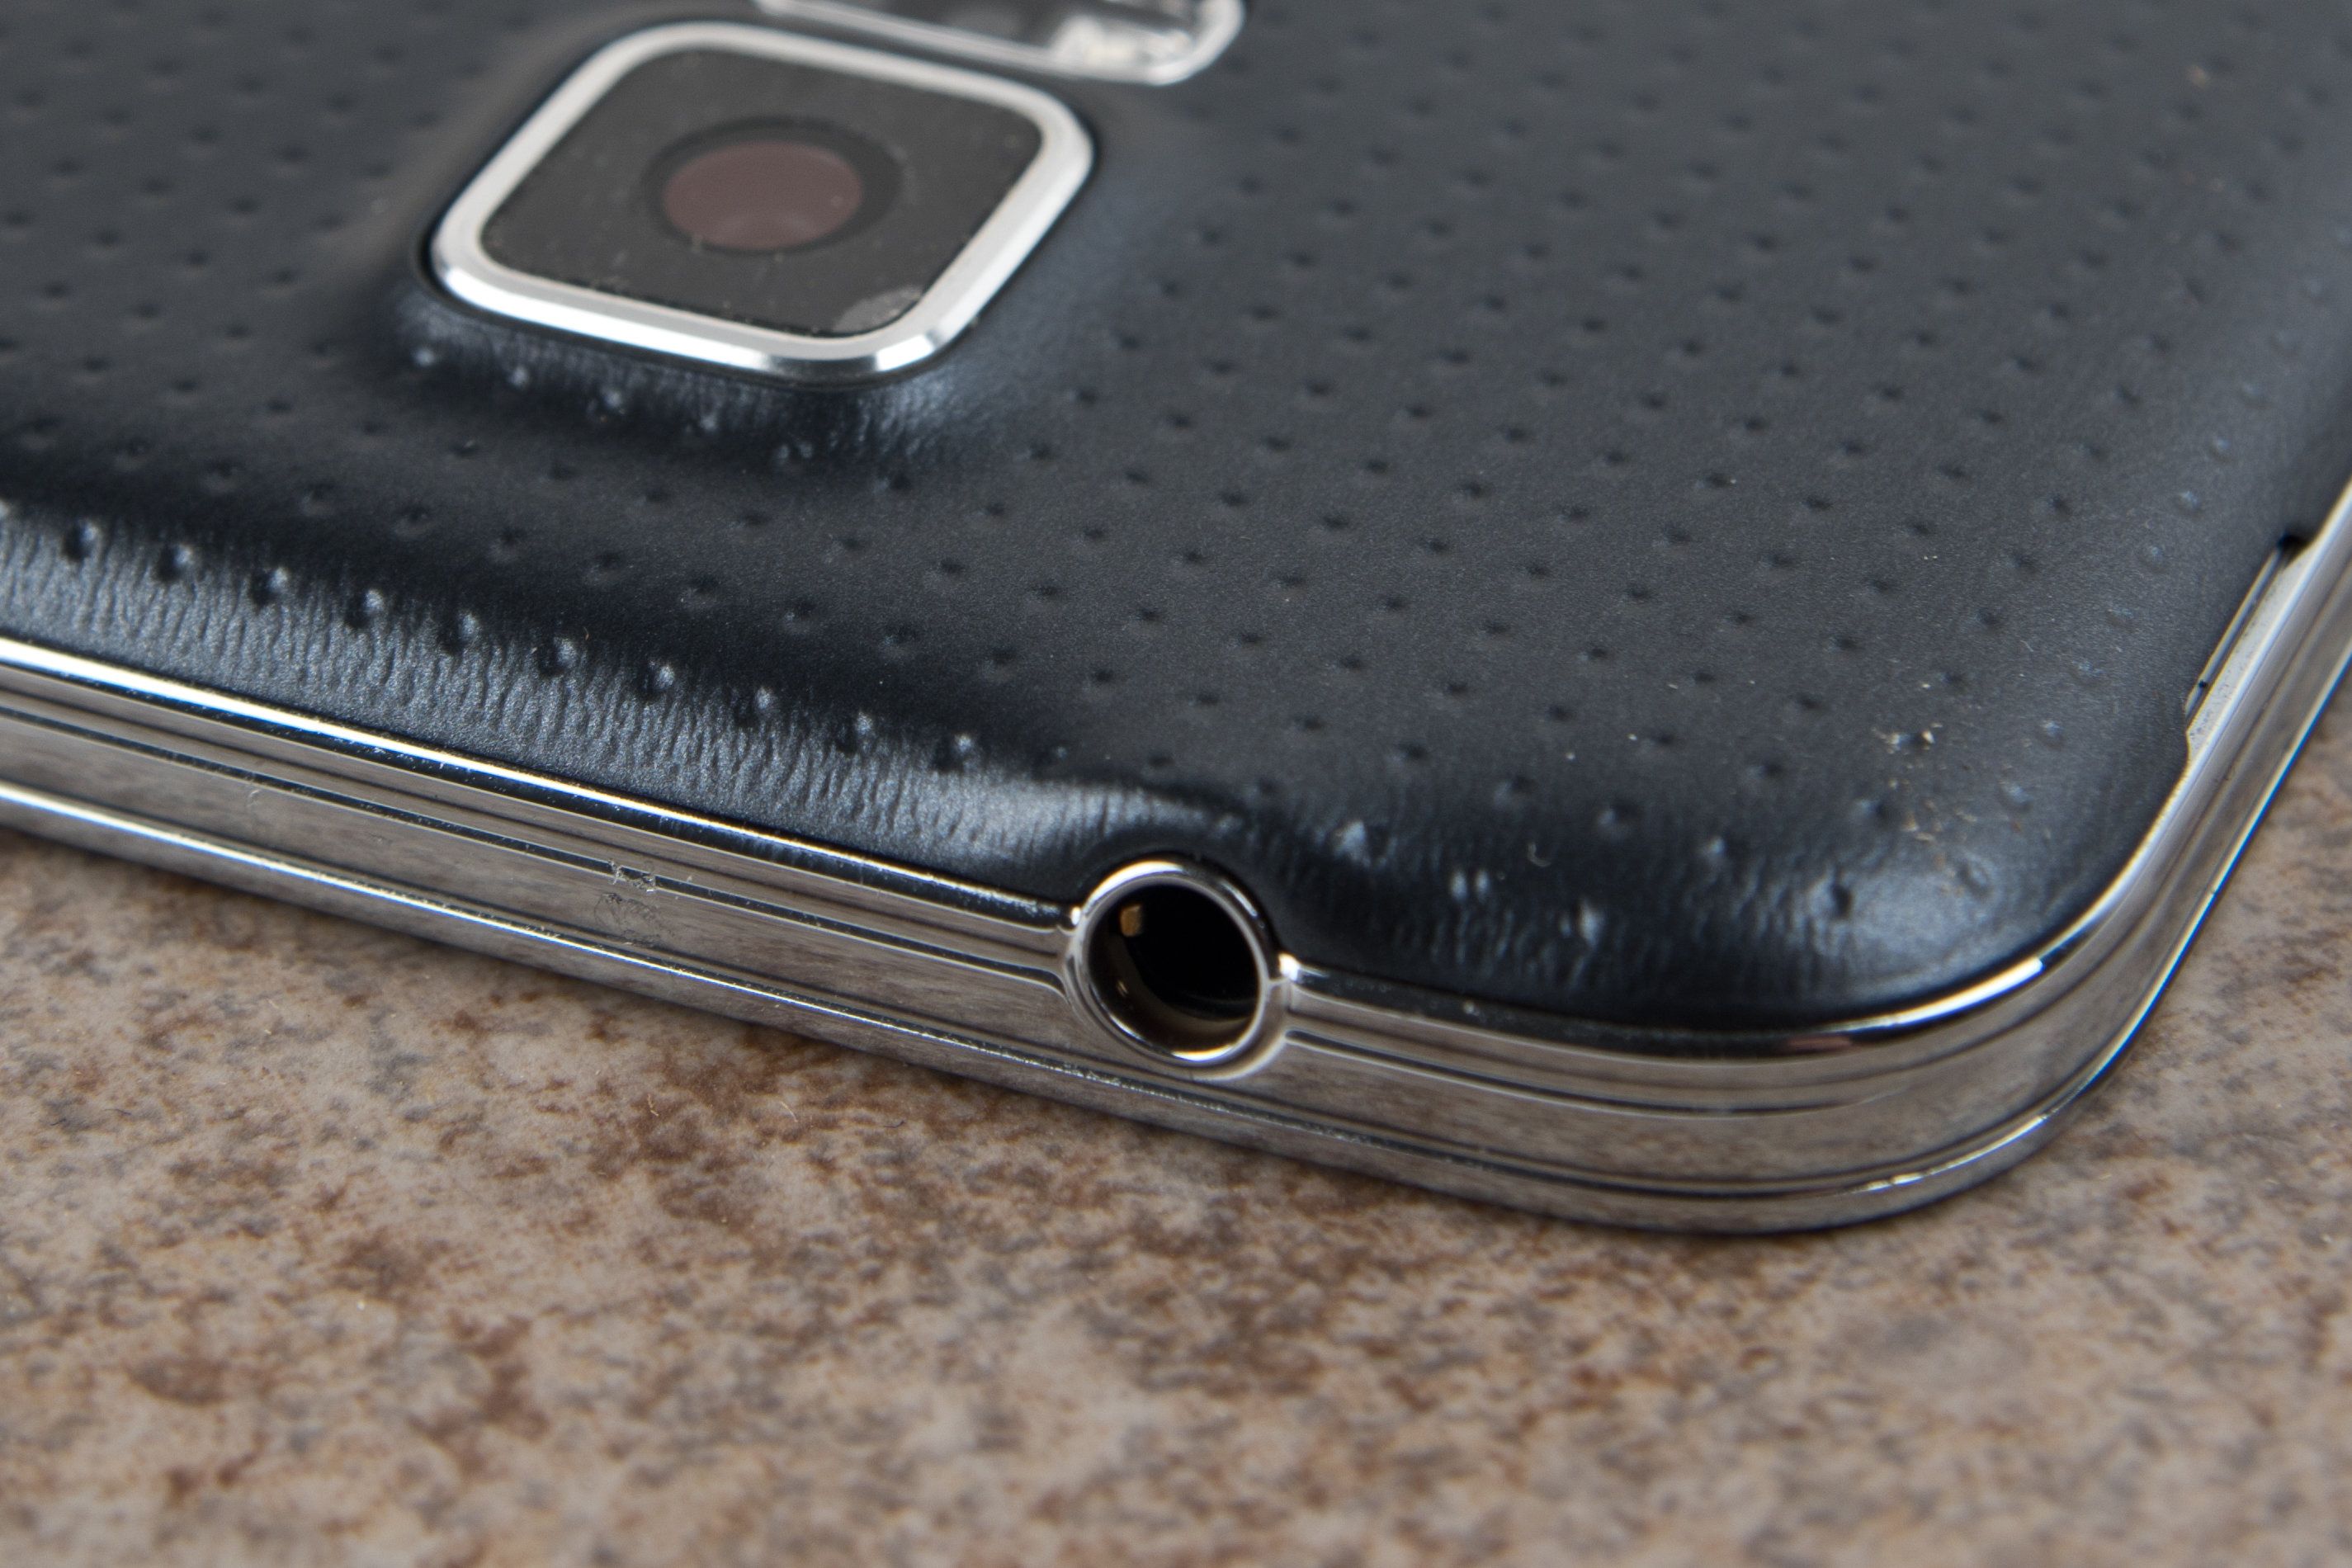 A picture of the Samsung Galaxy S5's headphone jack.